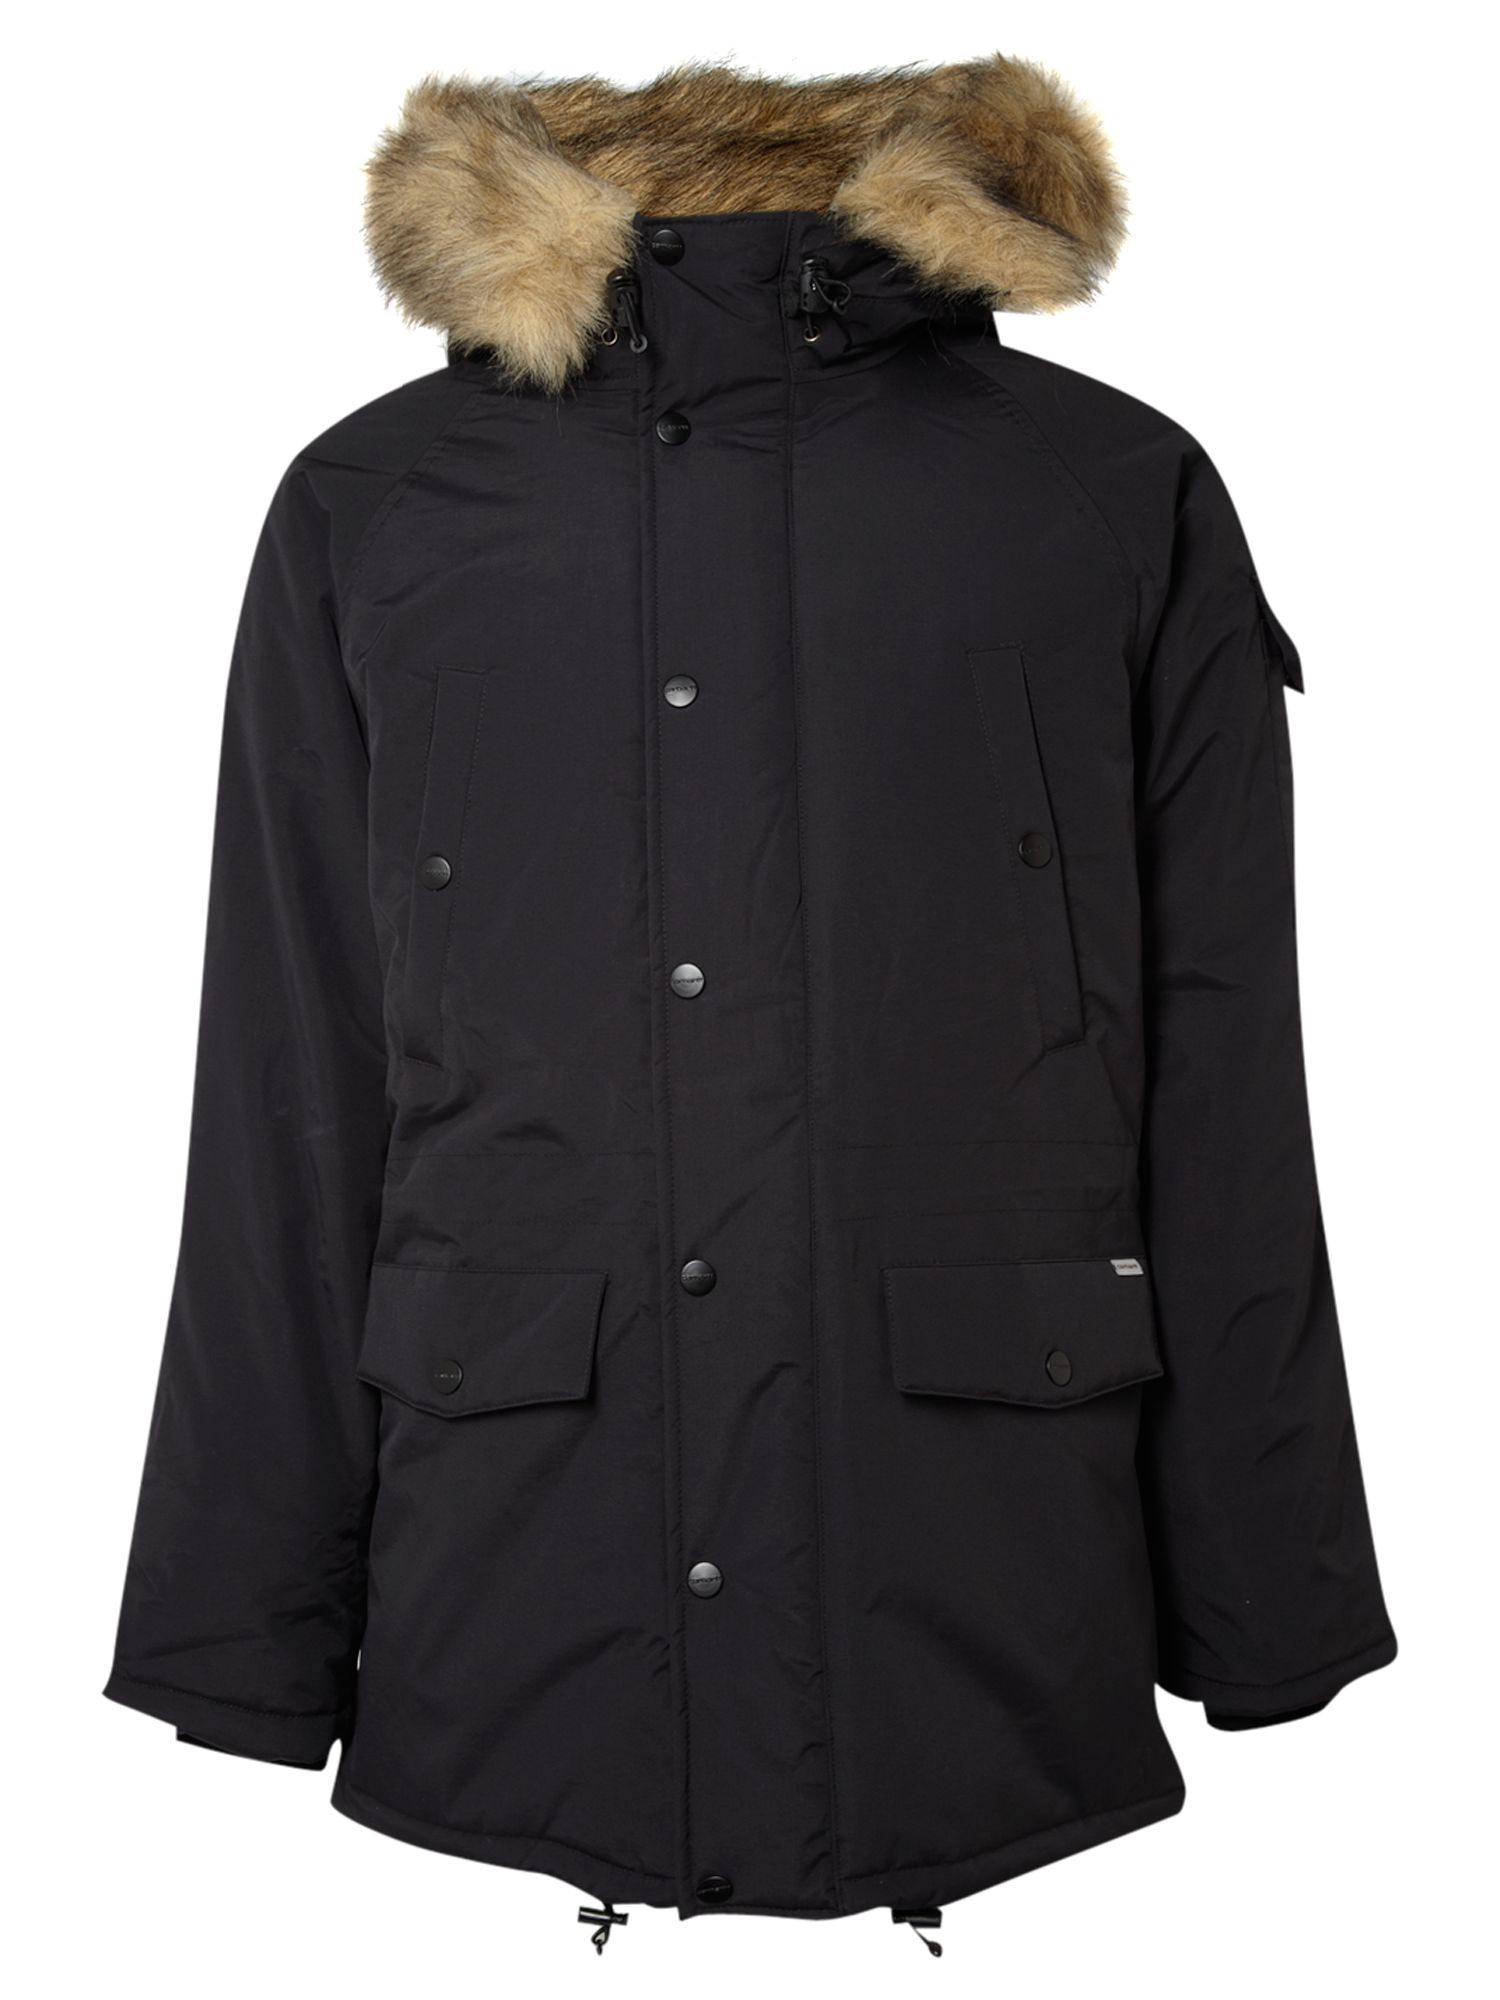 carhartt anchorage parka in black for men lyst. Black Bedroom Furniture Sets. Home Design Ideas